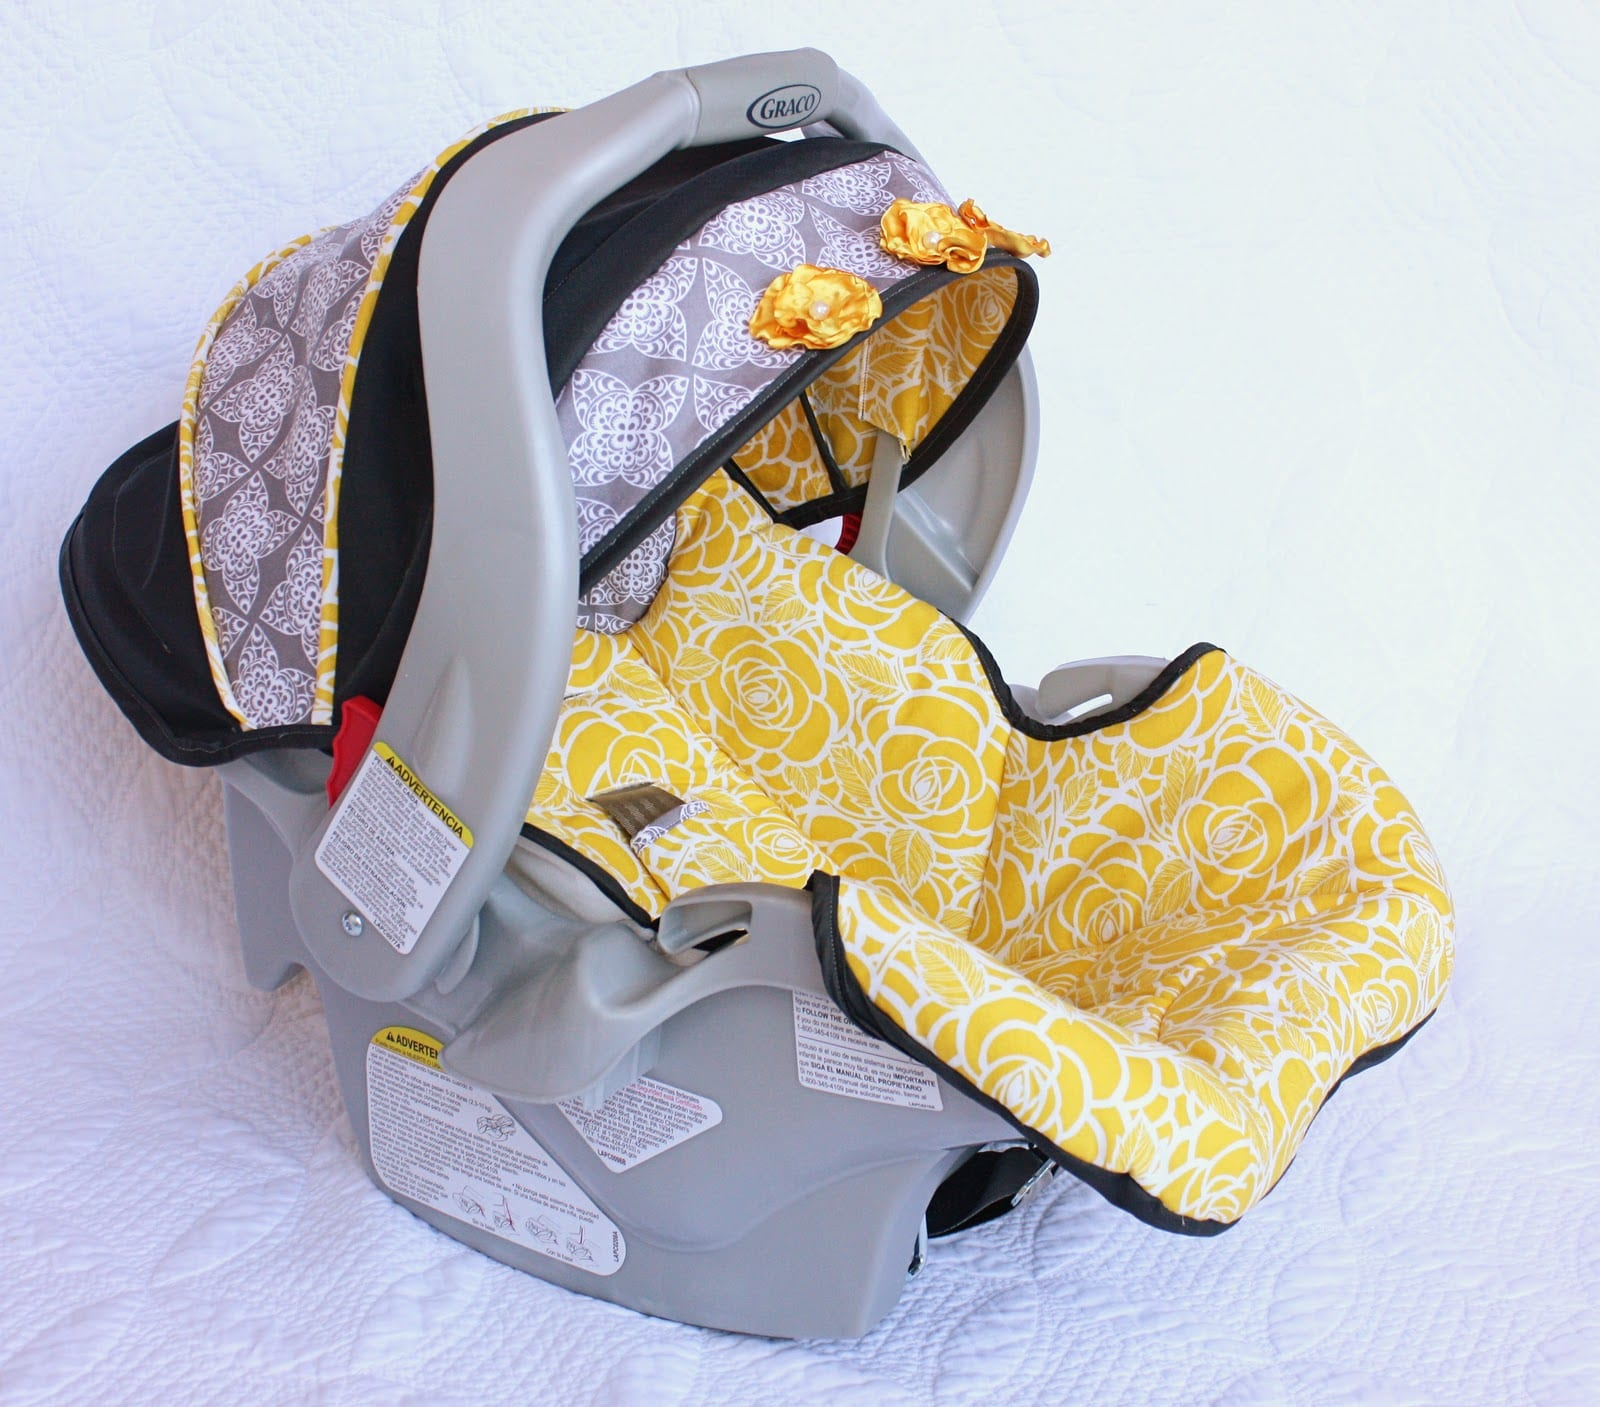 Recovering a Baby Car Seat